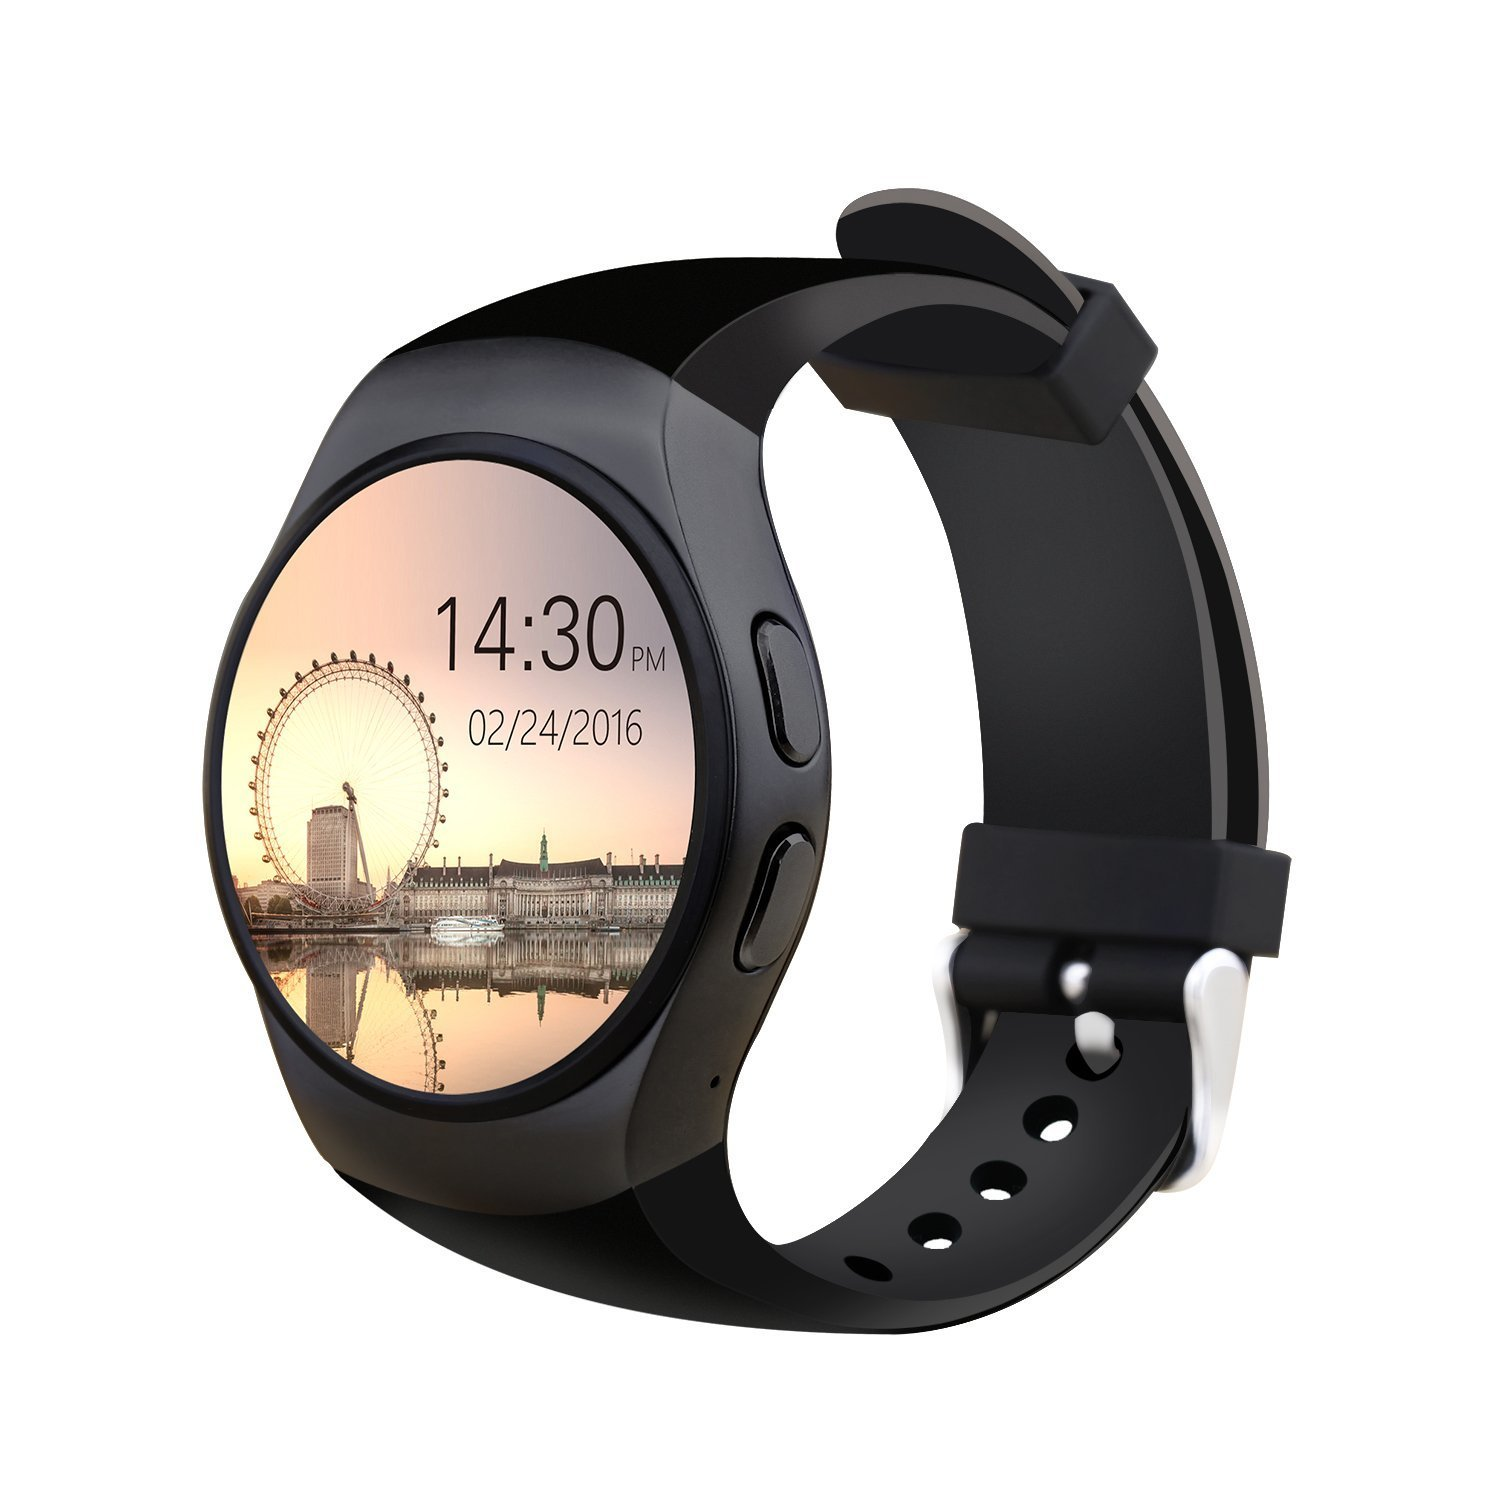 Amazon.com: JDA KW18 Smart Watch Gift 16g TF Card Android ...